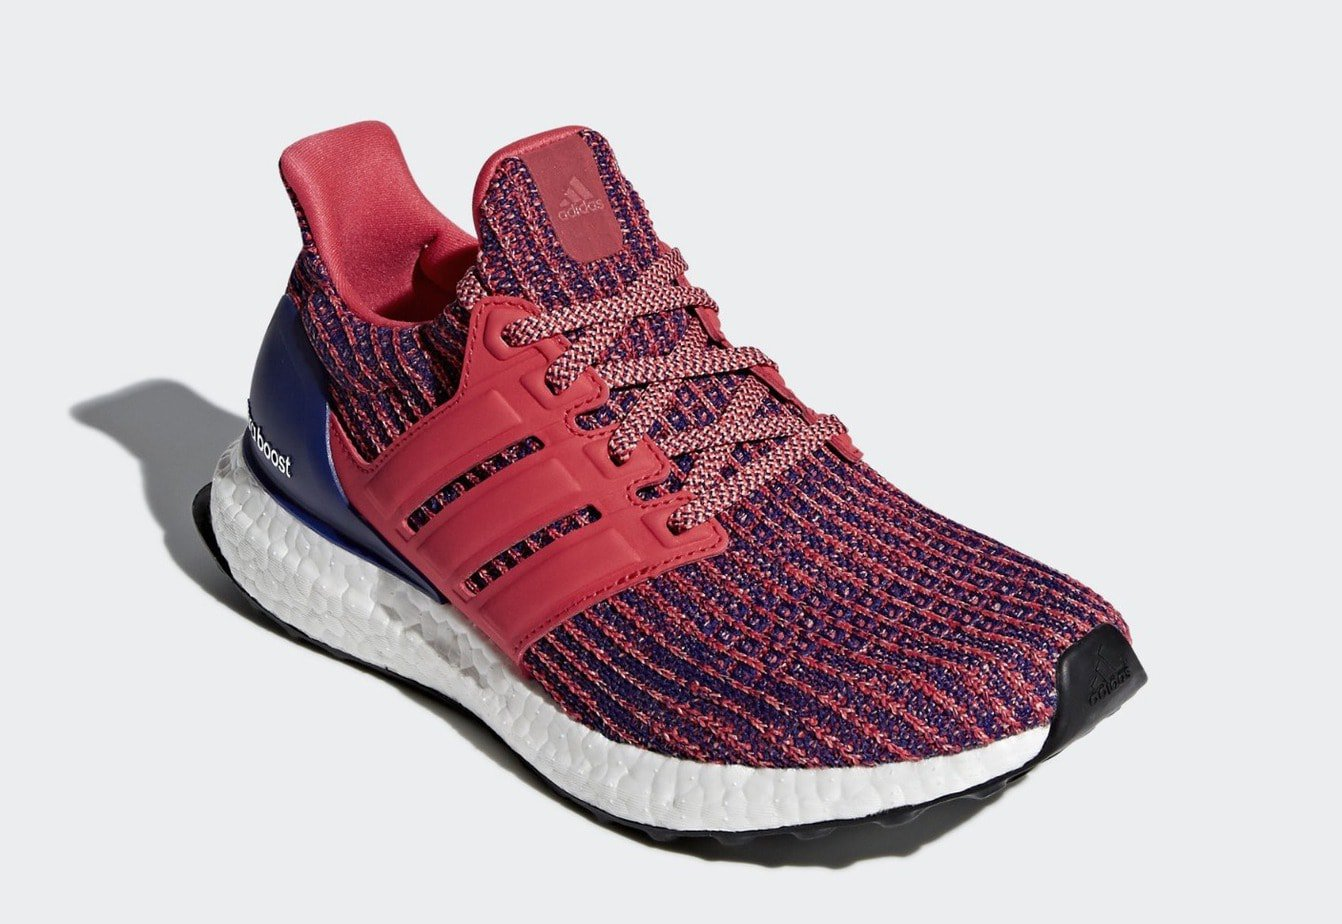 d4025a40fcf The adidas Ultra Boost received another Primeknit update for 2018